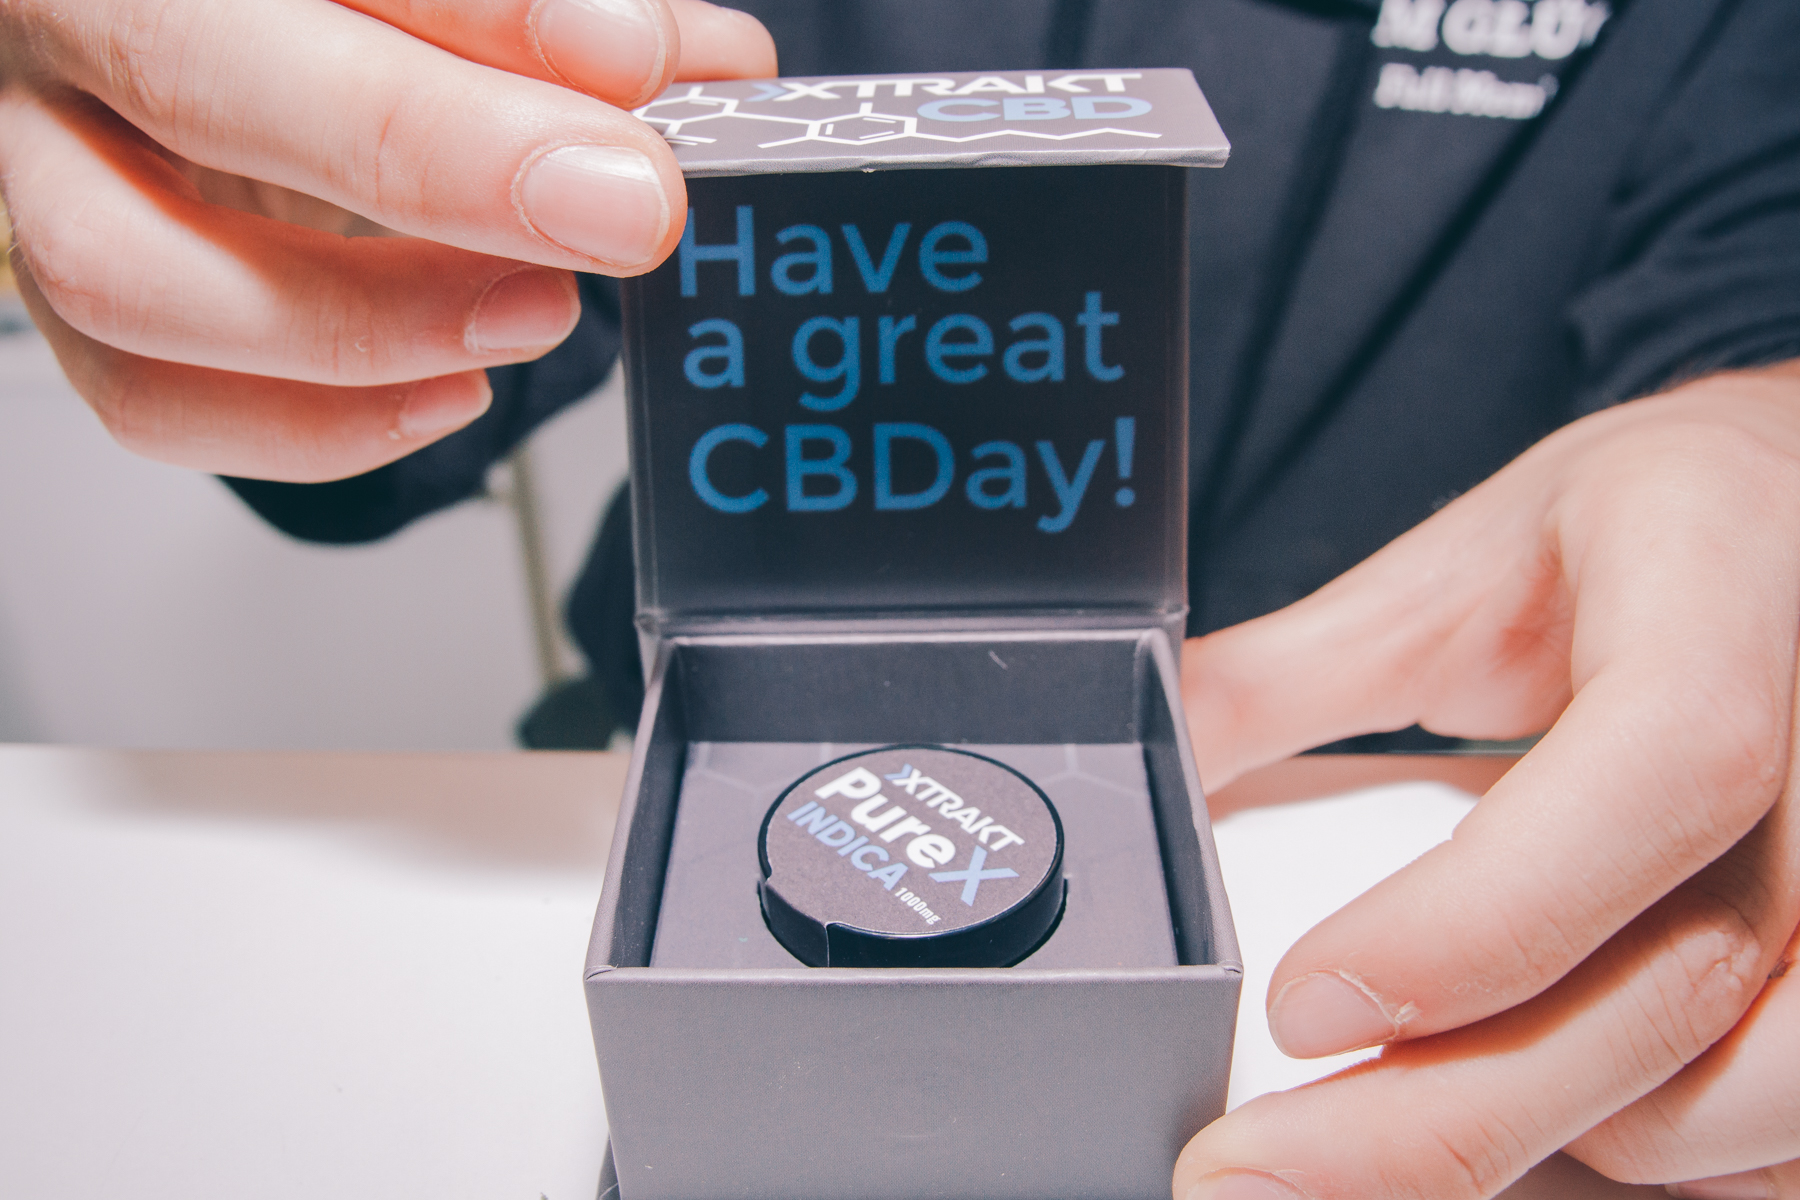 Have a great CBDay! – ©wunderland media GmbH